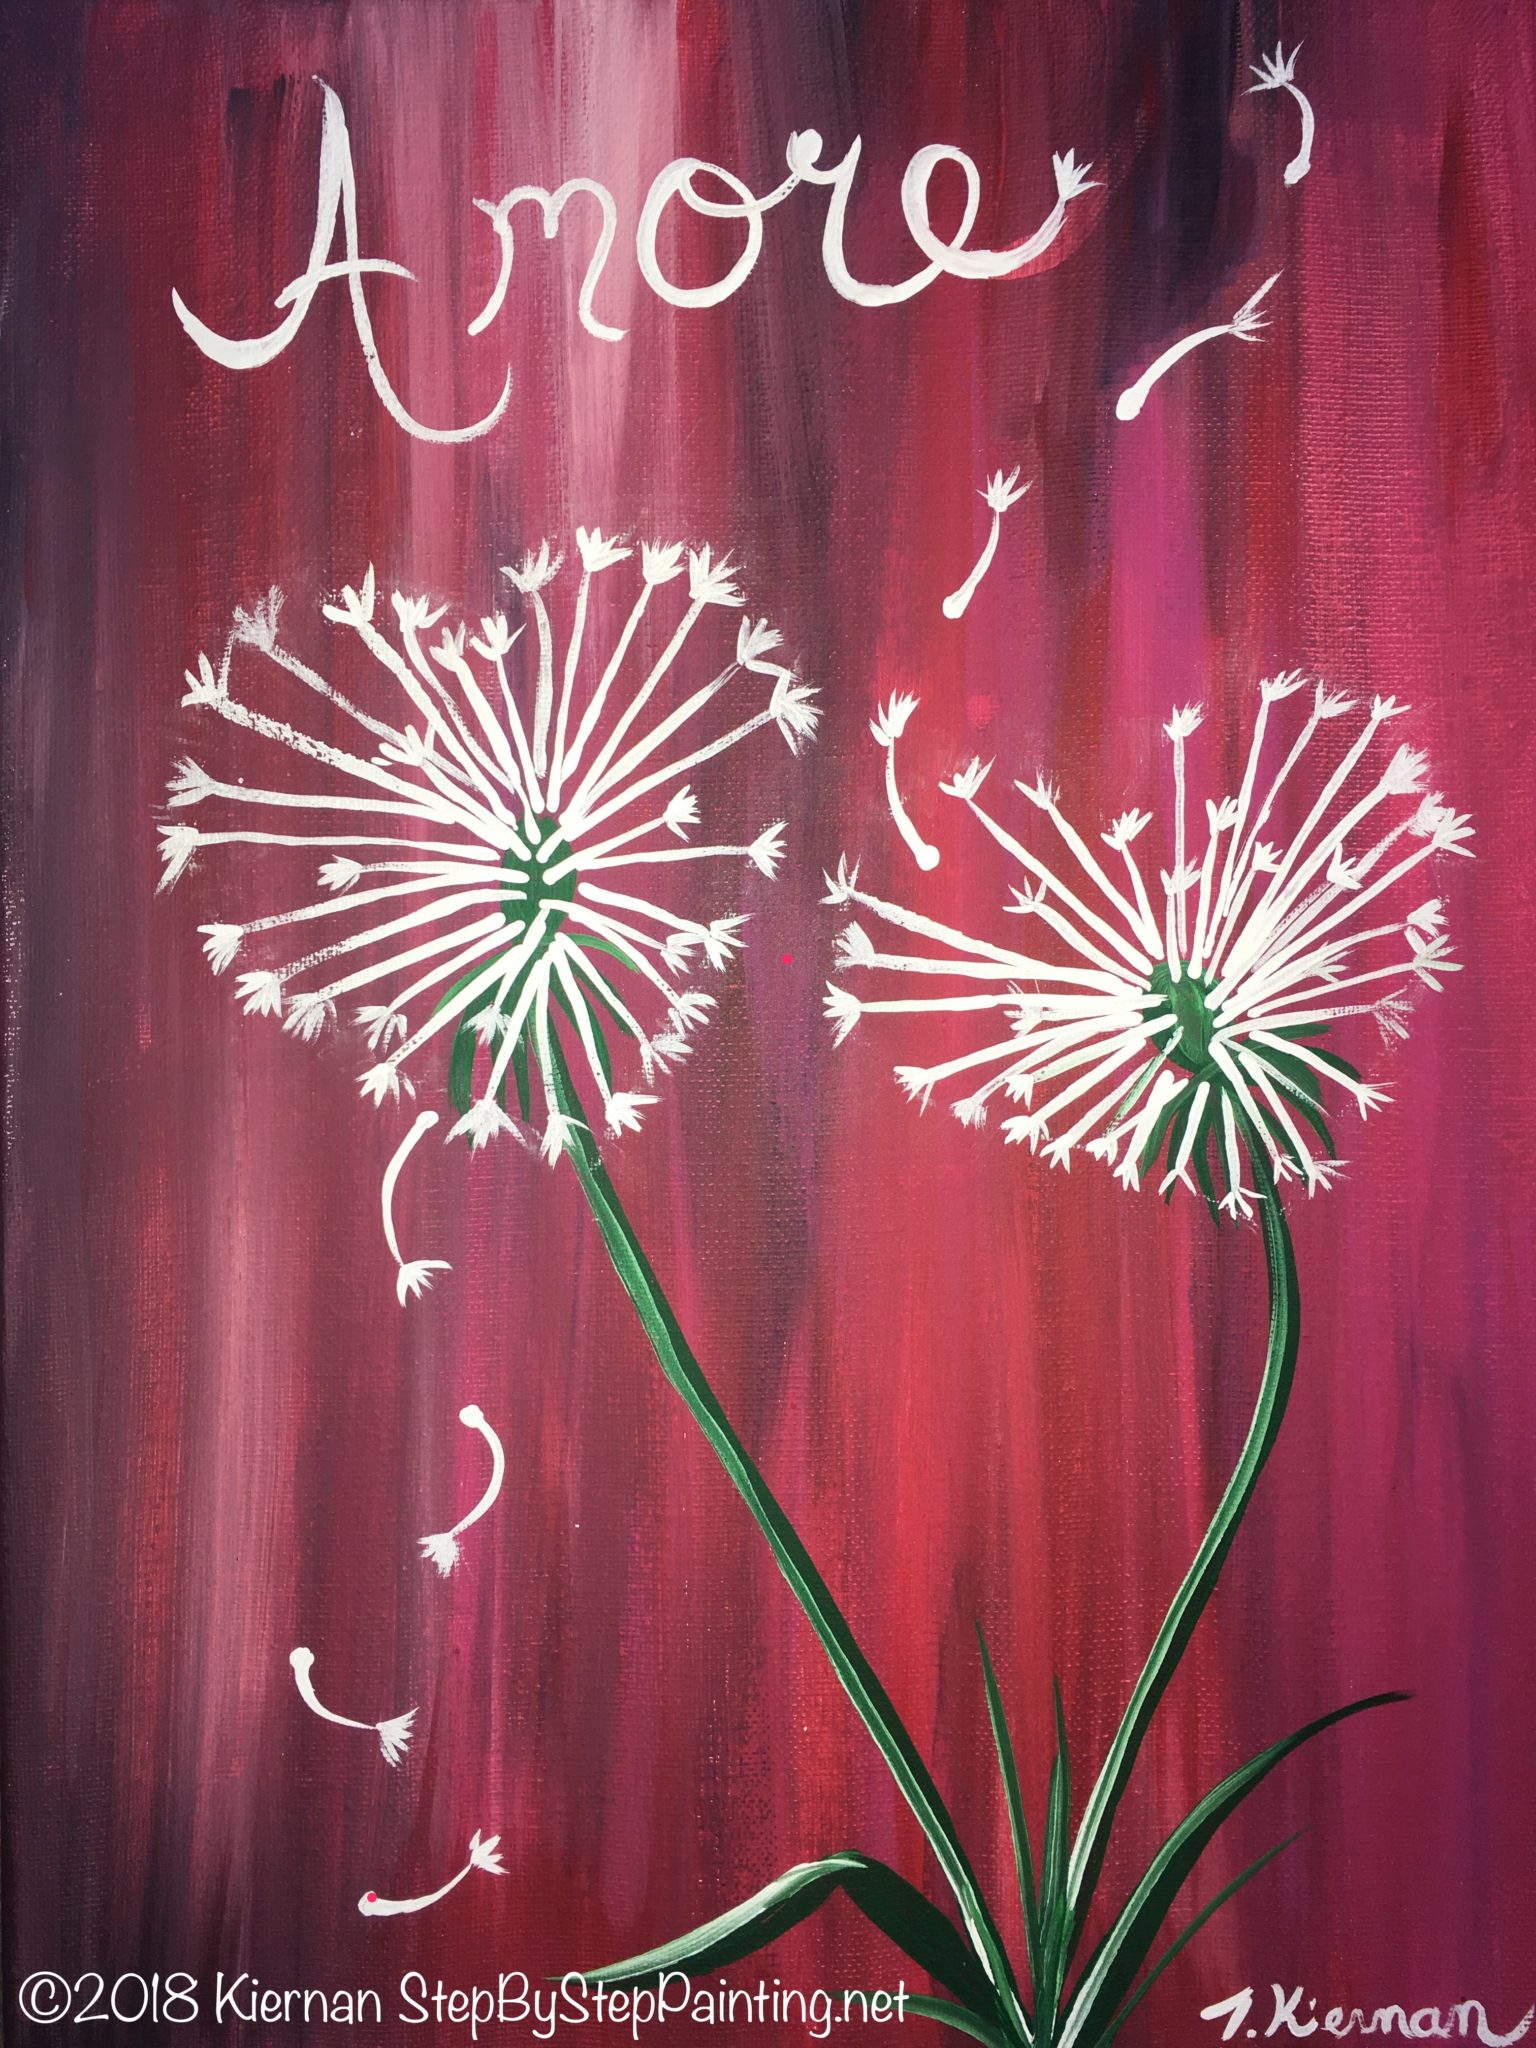 Step By Step Painting - Tracie's Acrylic Canvas Tutorials - photo#44